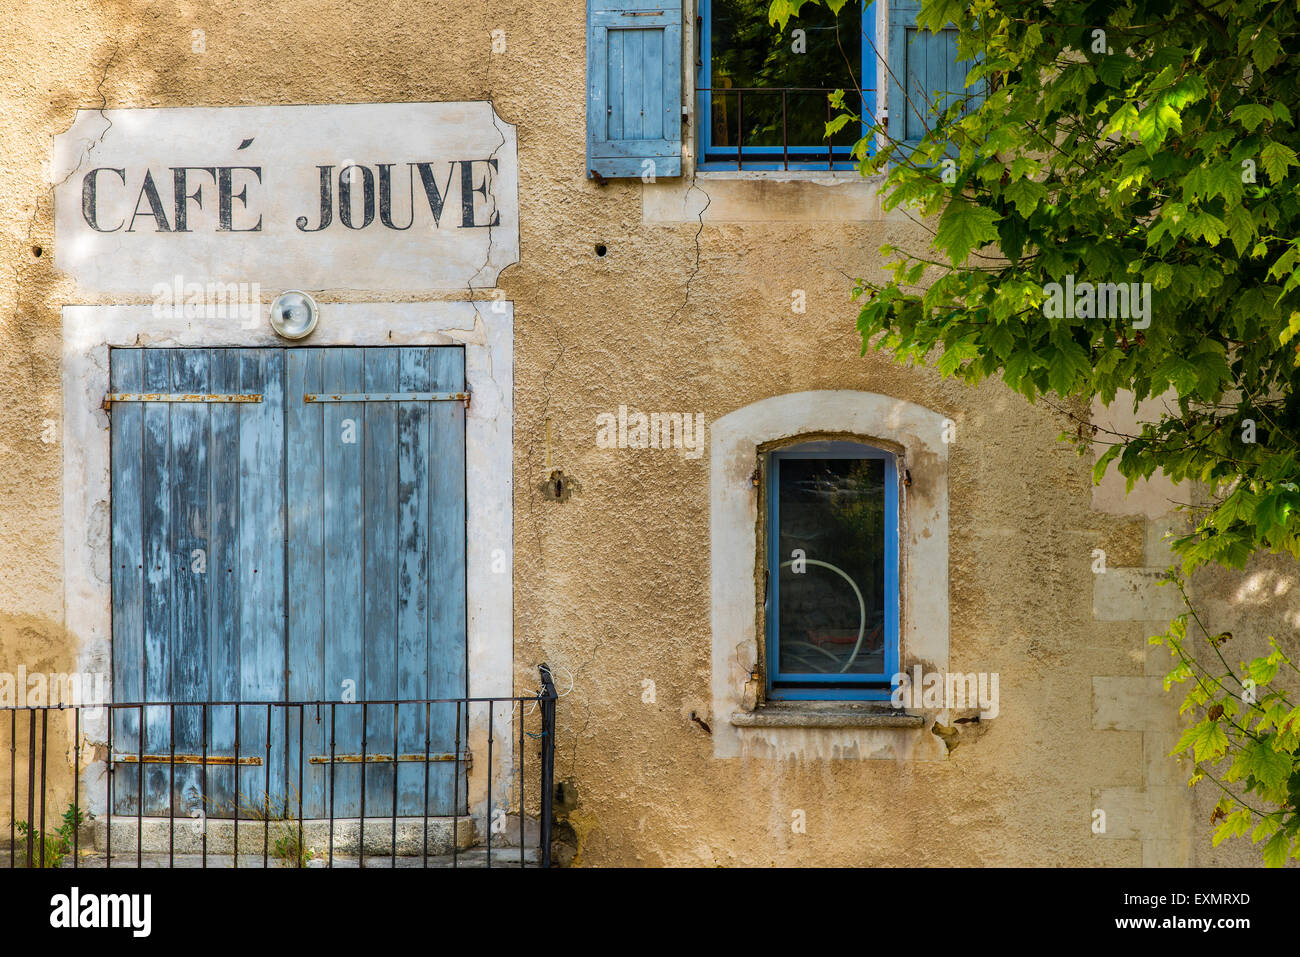 Facade of an old house with painted shop sign in Aurel, Provence, France - Stock Image